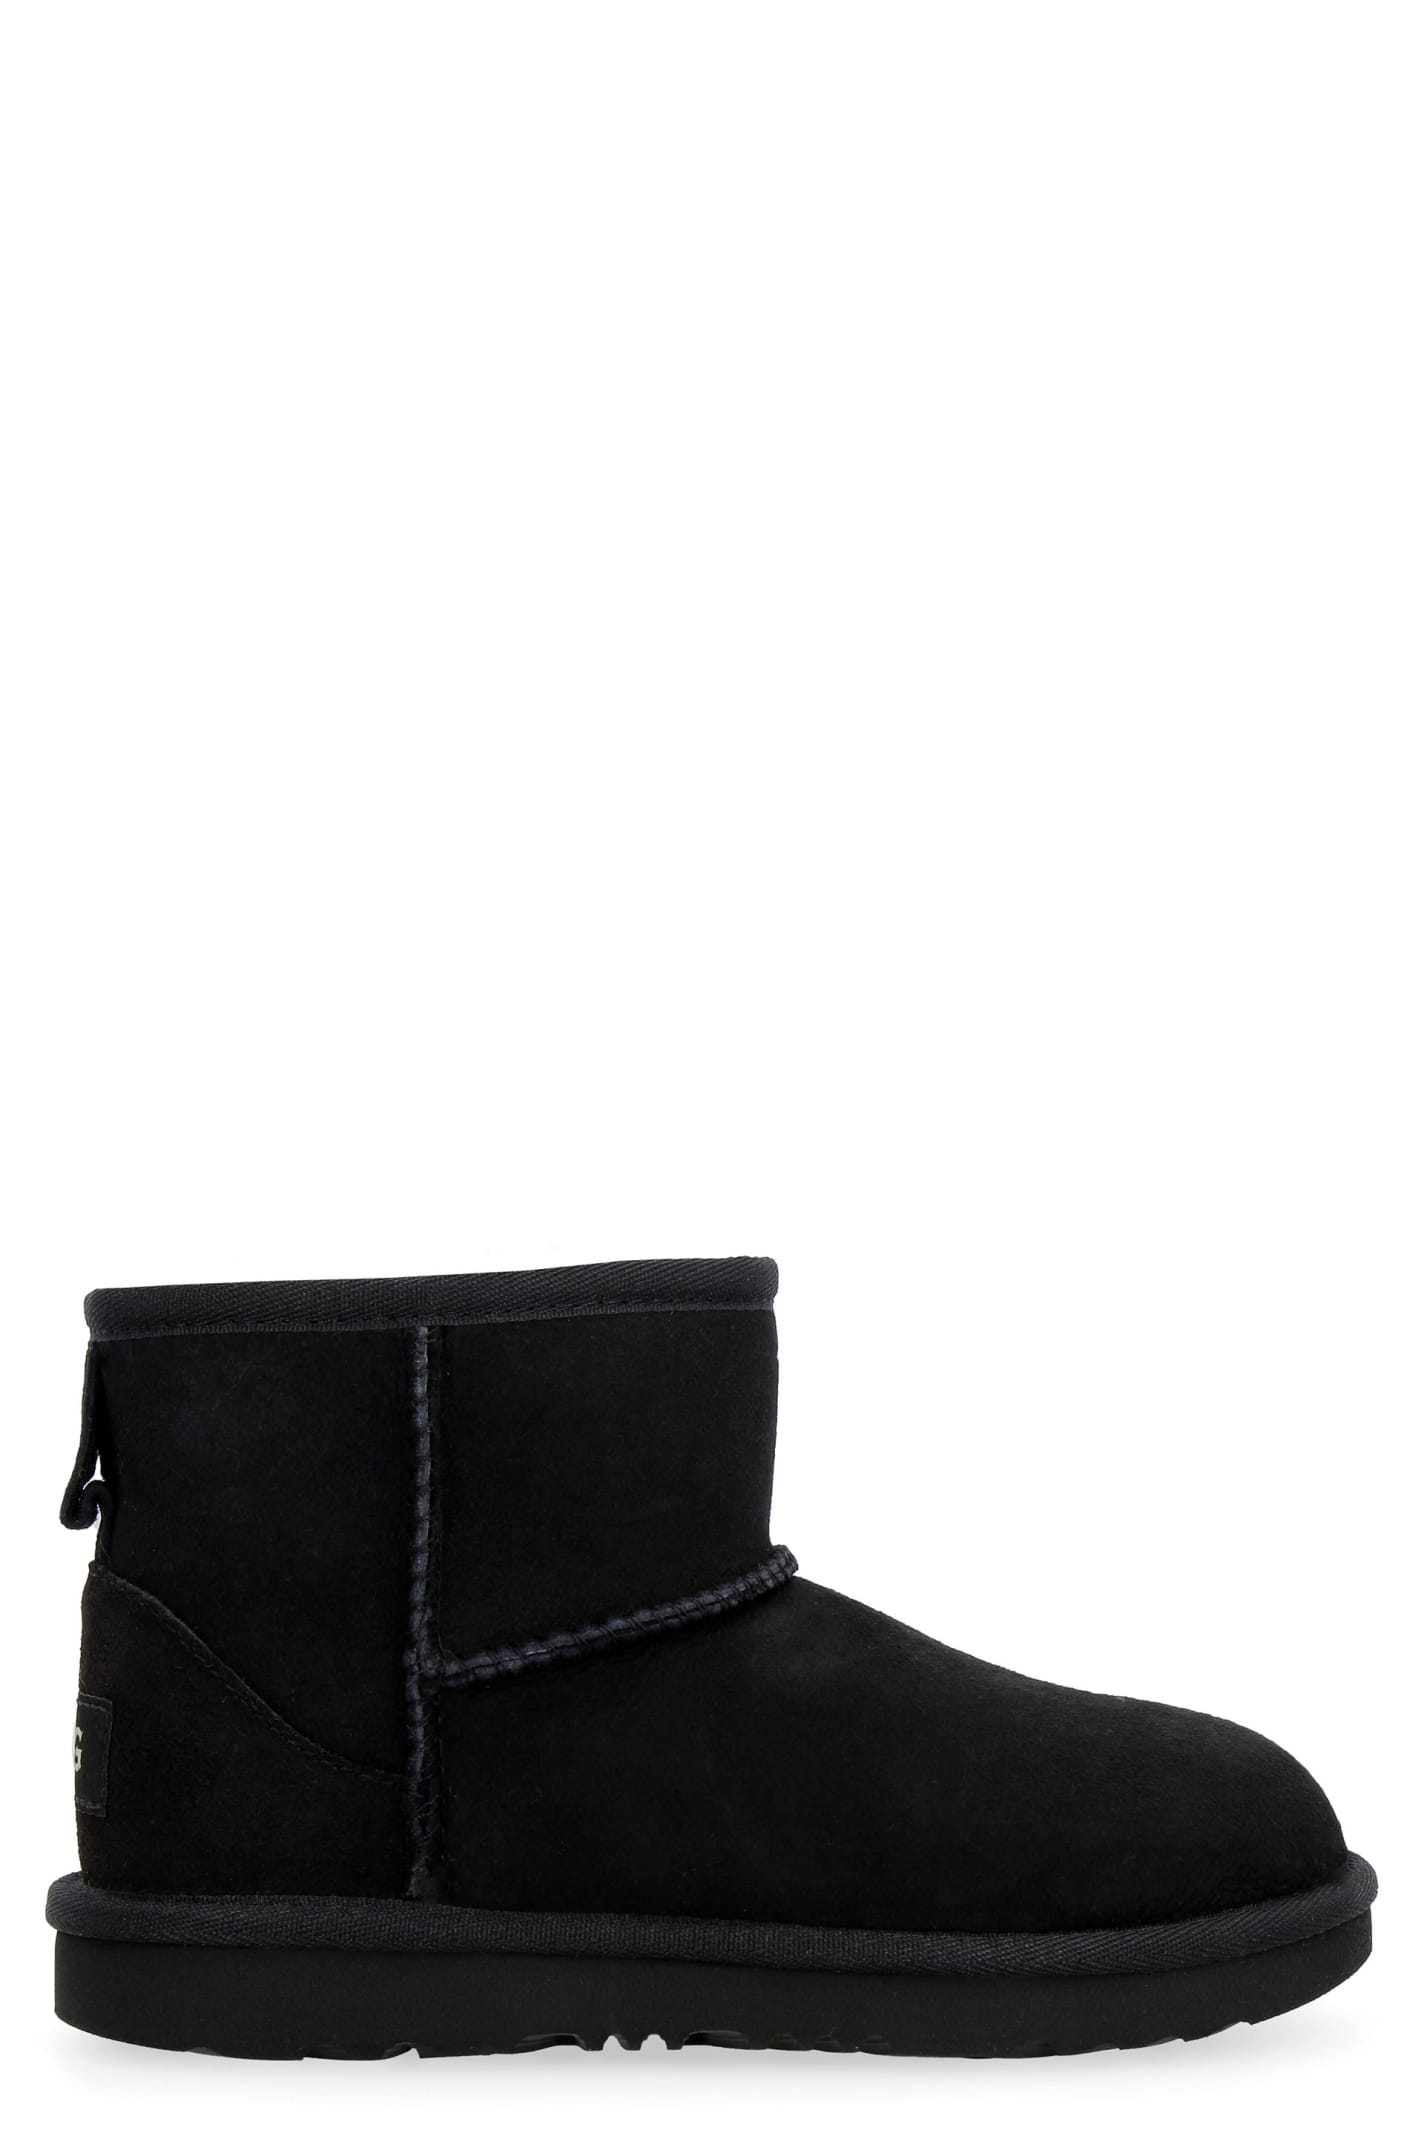 Buy UGG Classic Mini Ii Boots online, shop UGG shoes with free shipping